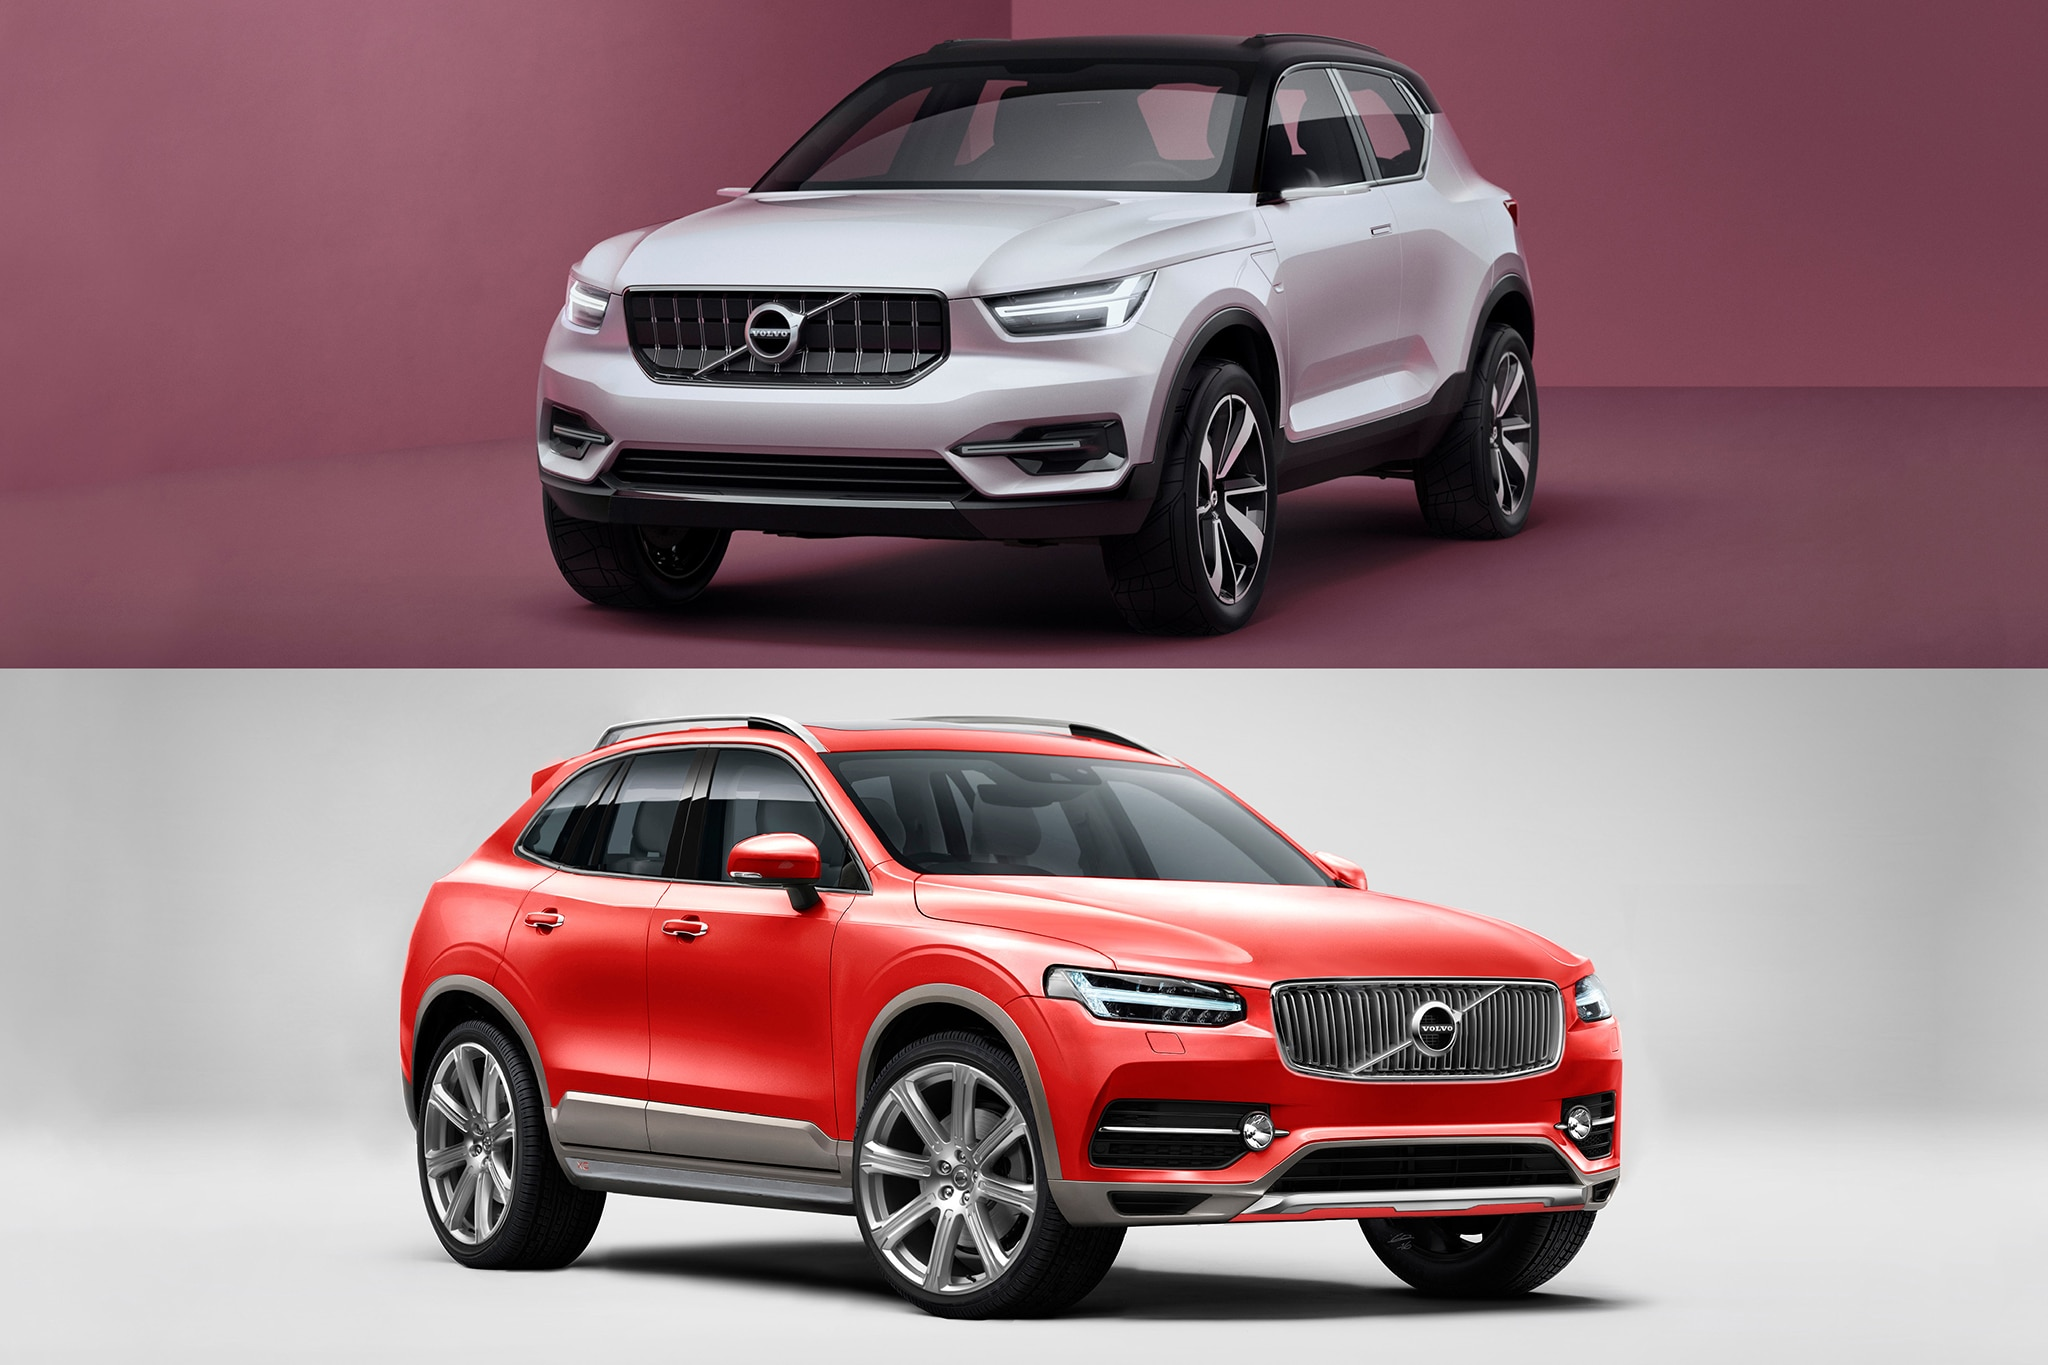 volvo xc40 small crossover who designed it better. Black Bedroom Furniture Sets. Home Design Ideas